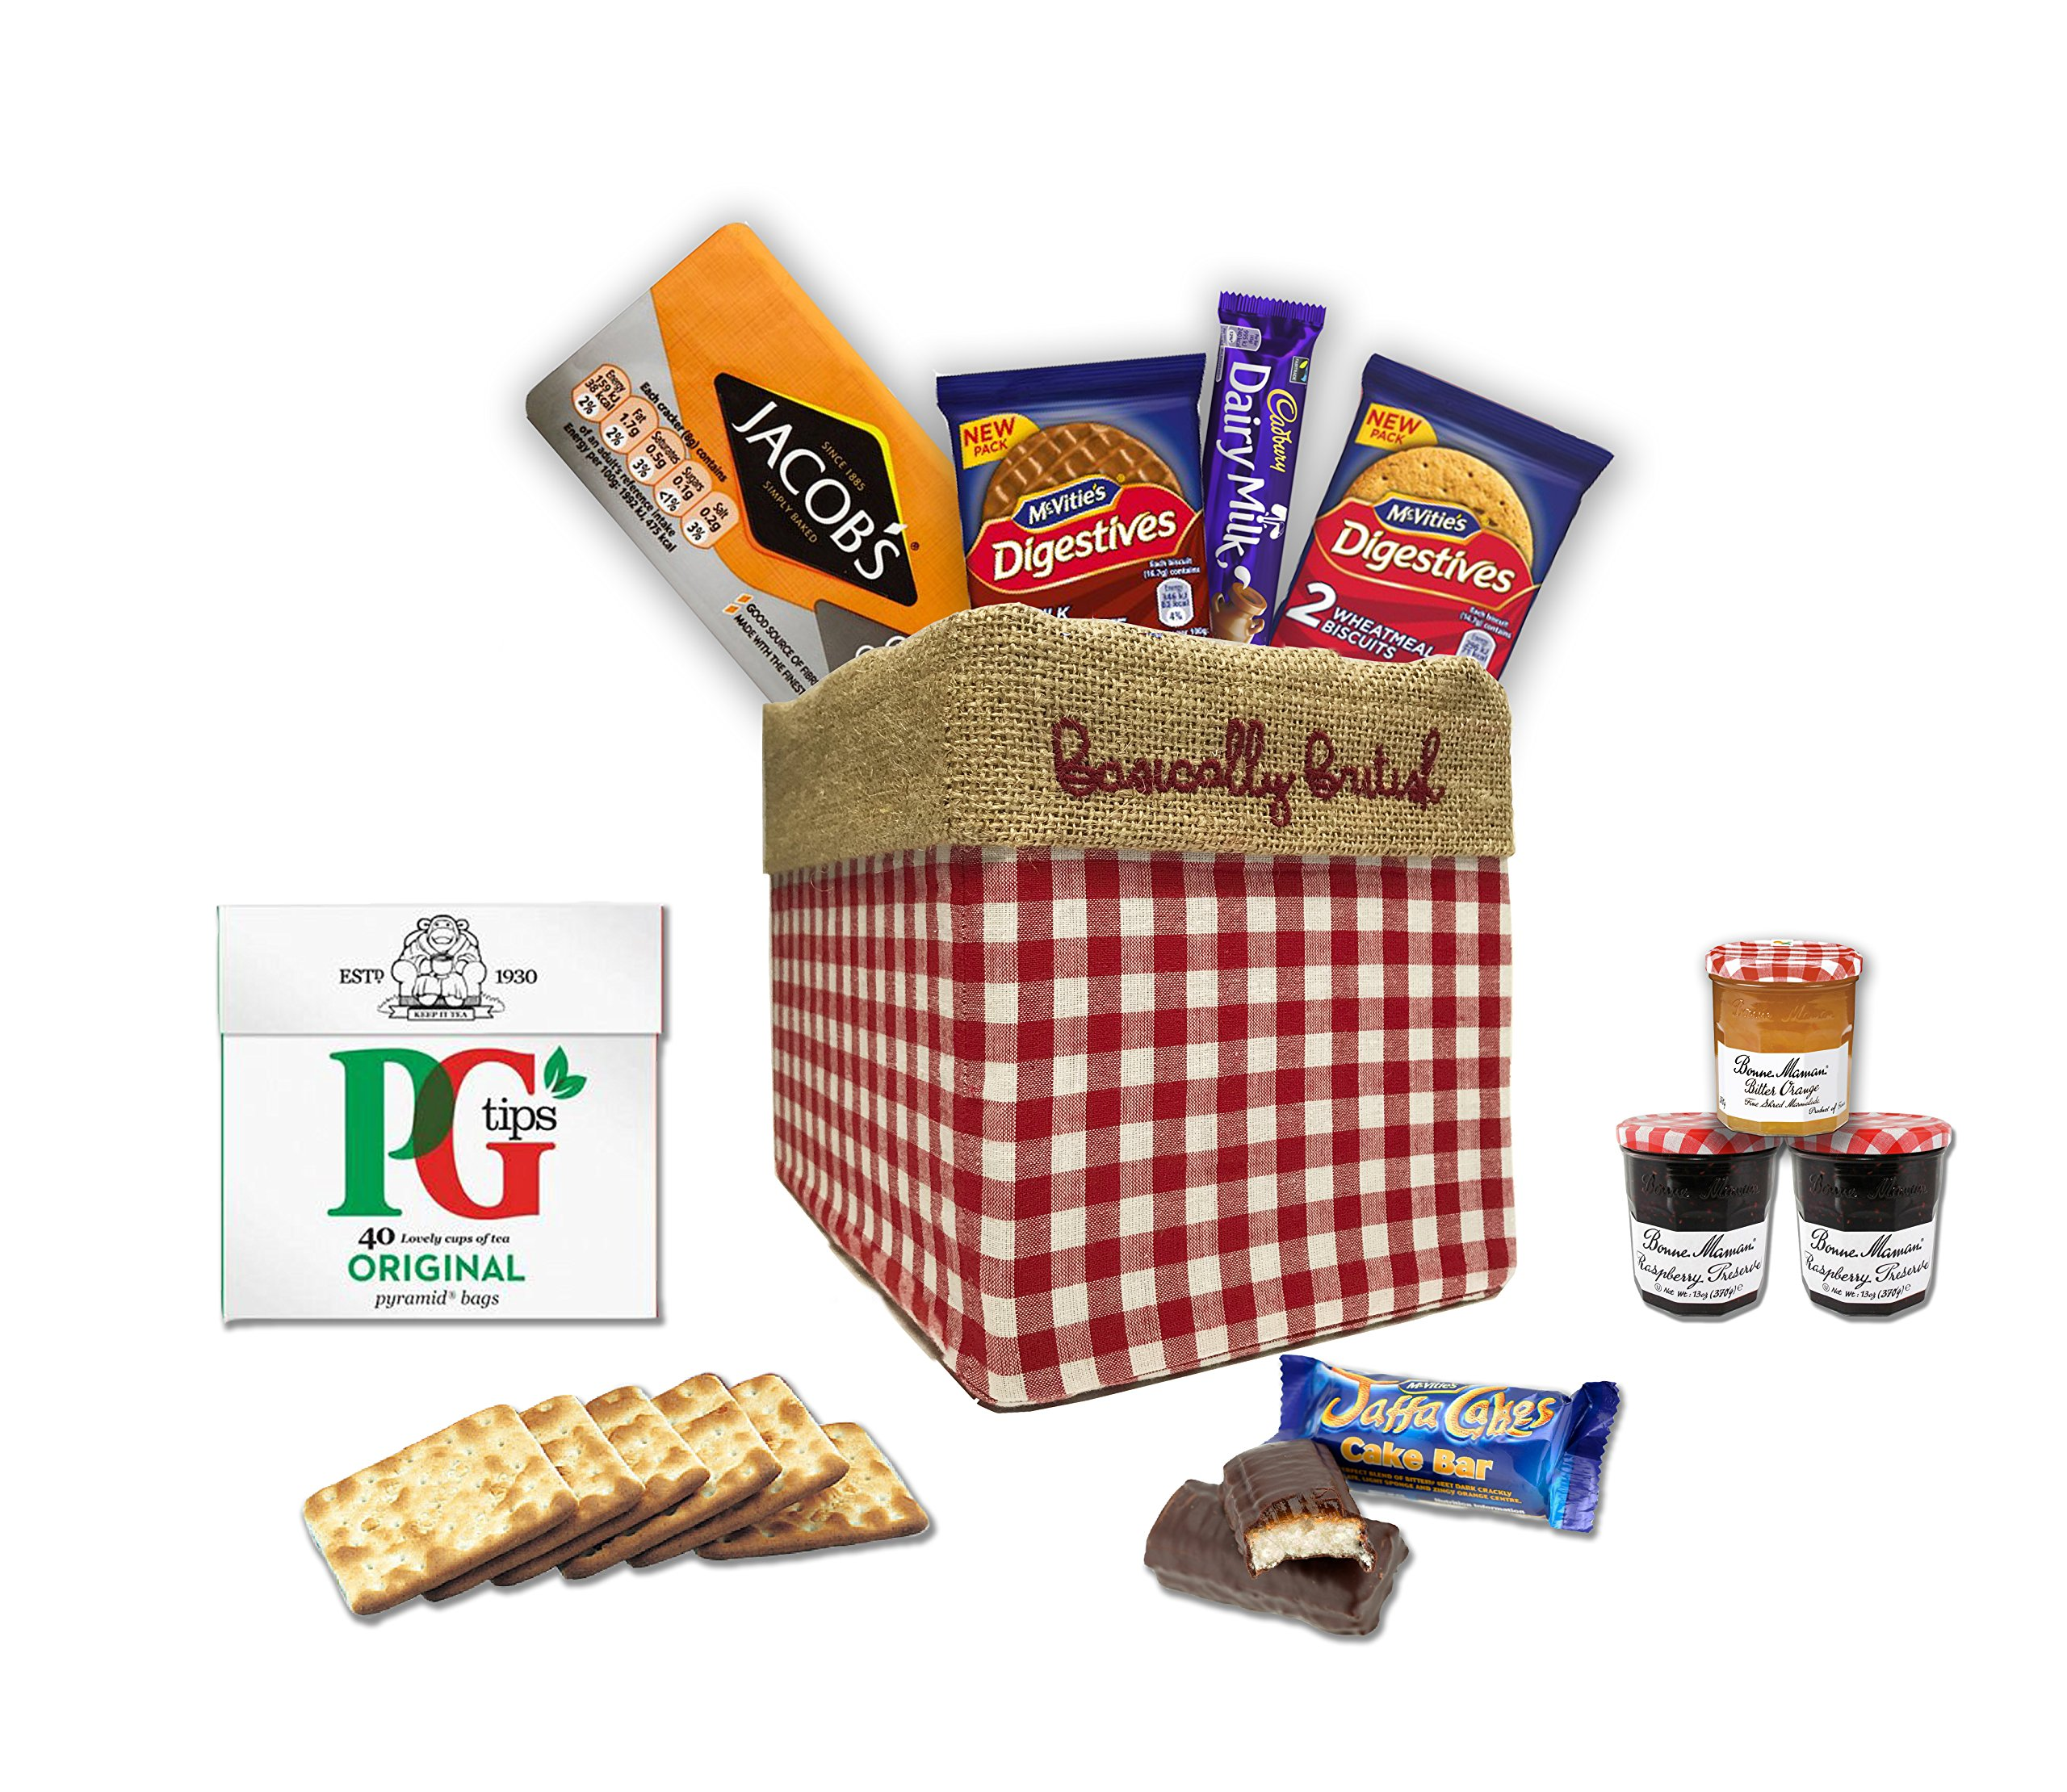 The Great British Gift Box by The Yummy Palette   PG tips tea bags Jacob's crackers Digestives Cadbury Dairy Milk Jaffa Cakes in Basically British Gift Box